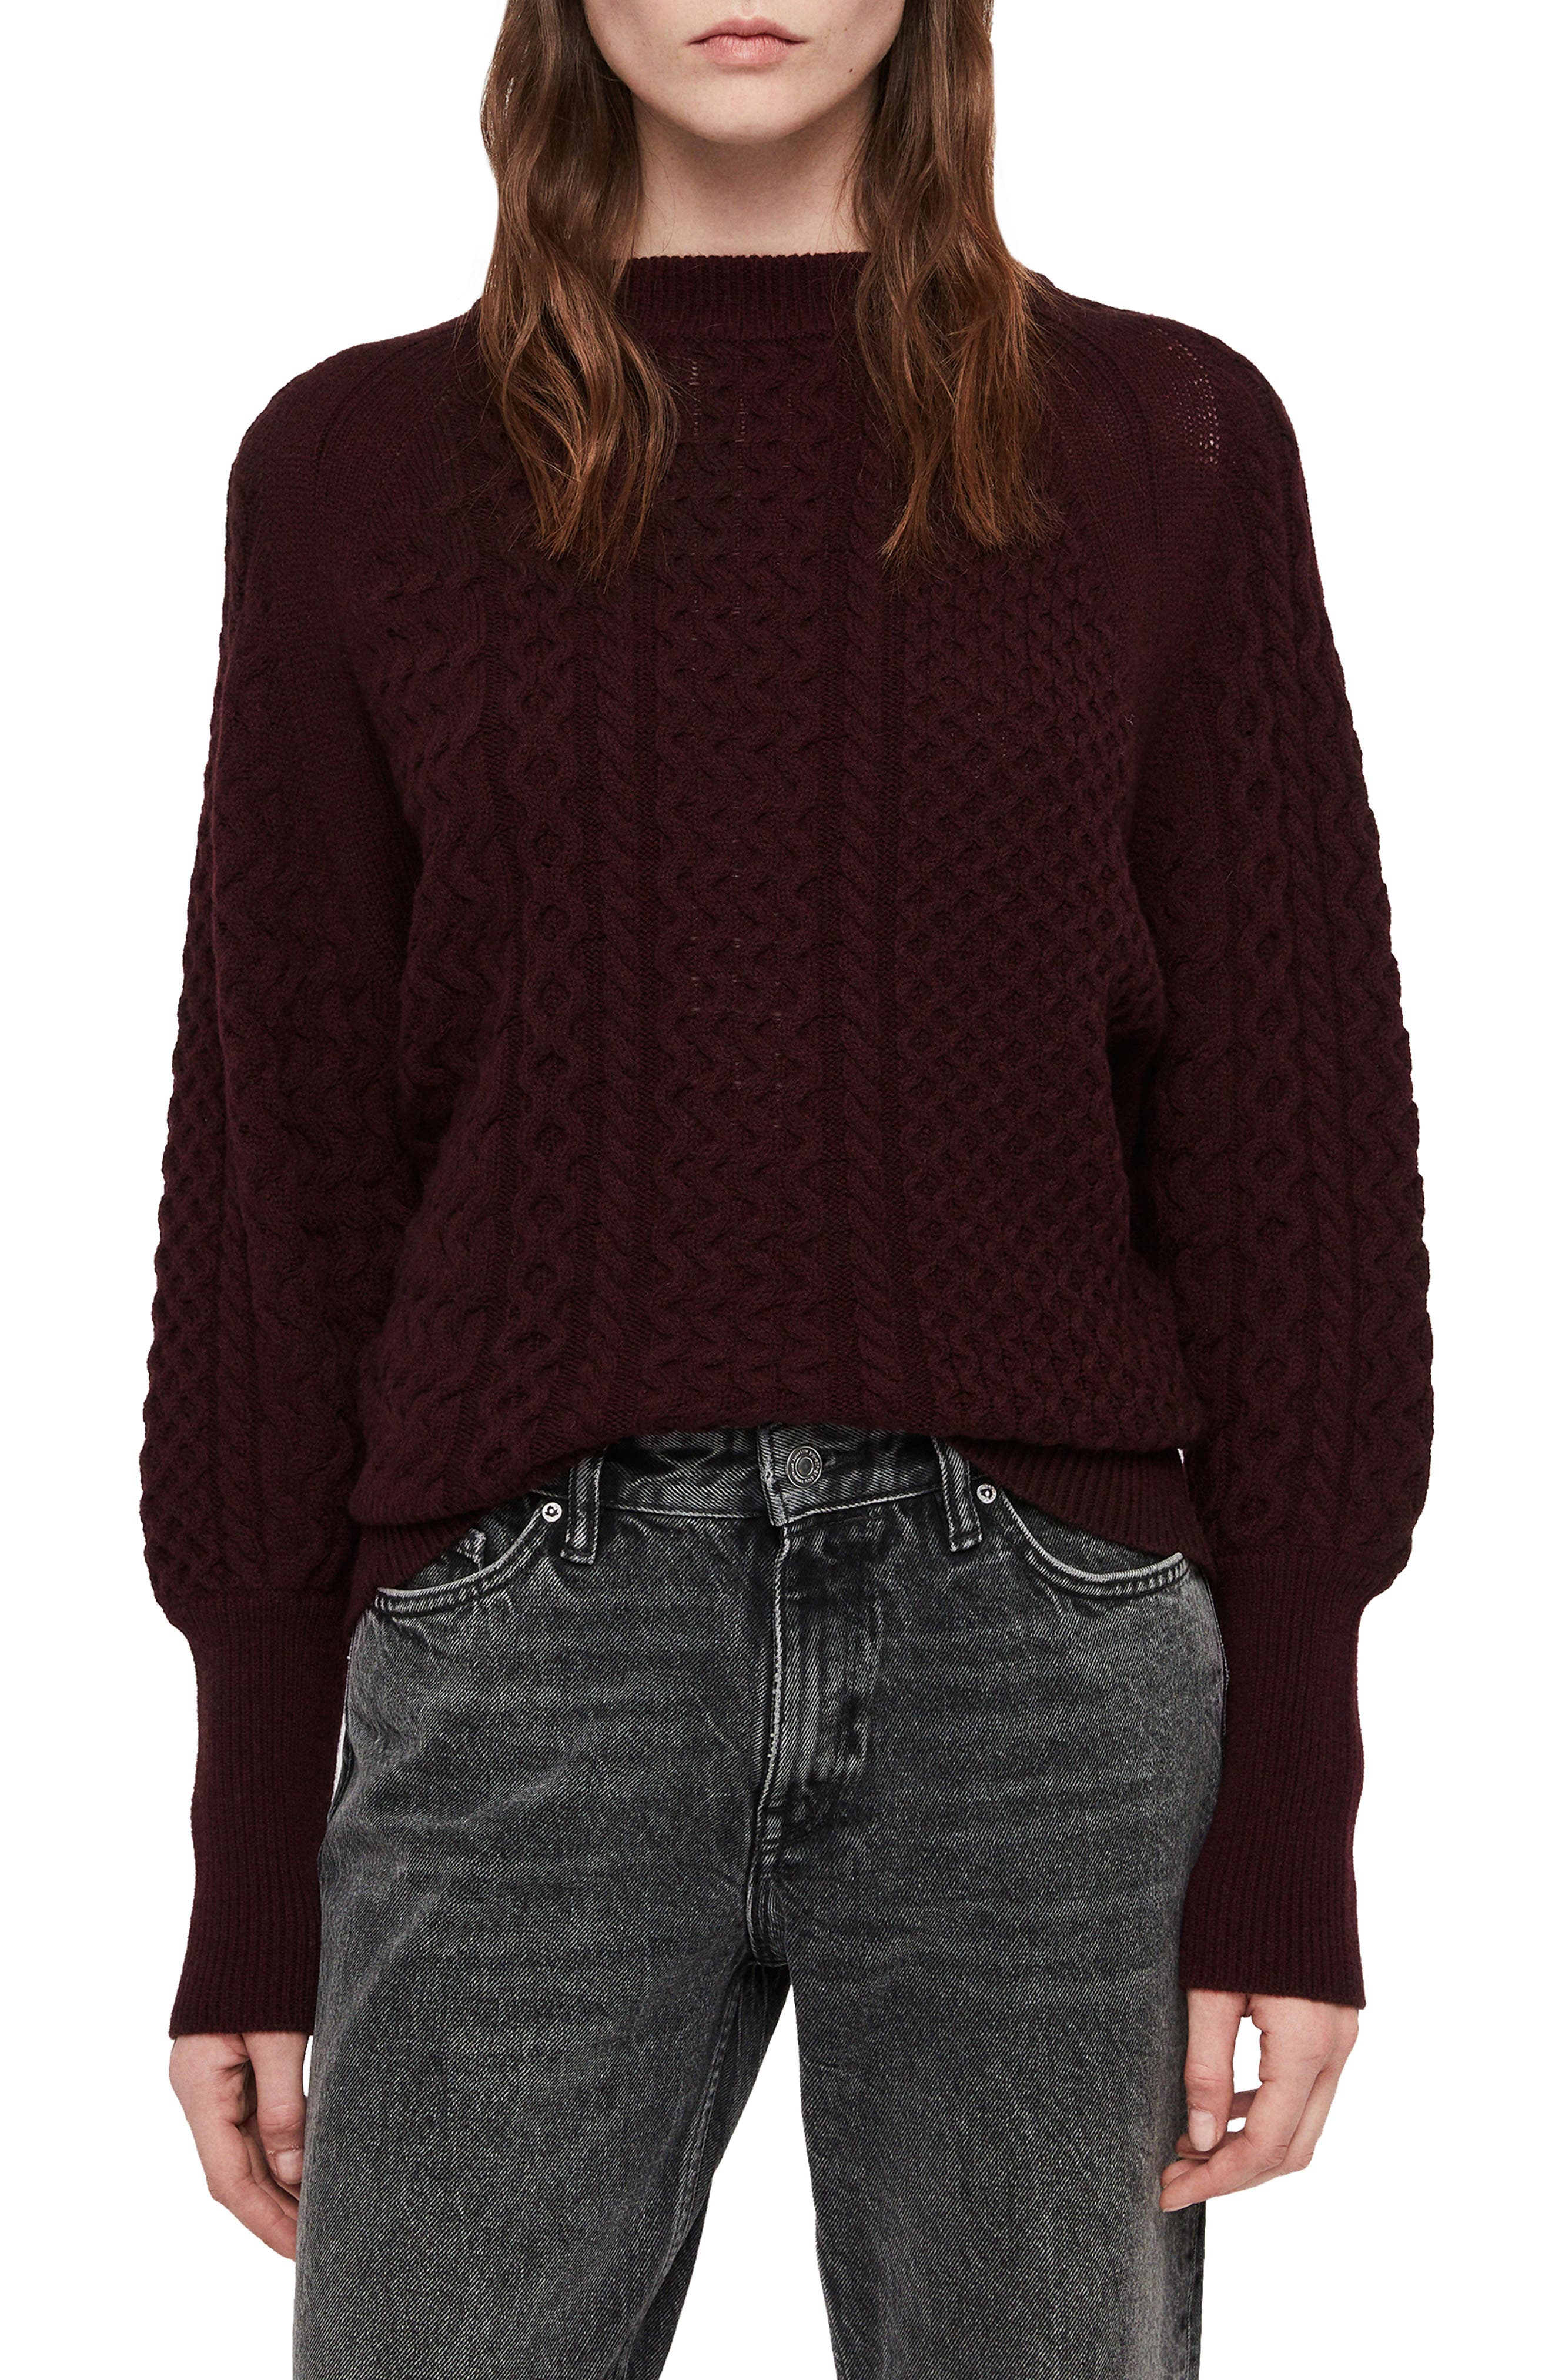 ALLSAINTS Dilone Mixed Knit Sweater in Burgundy Red